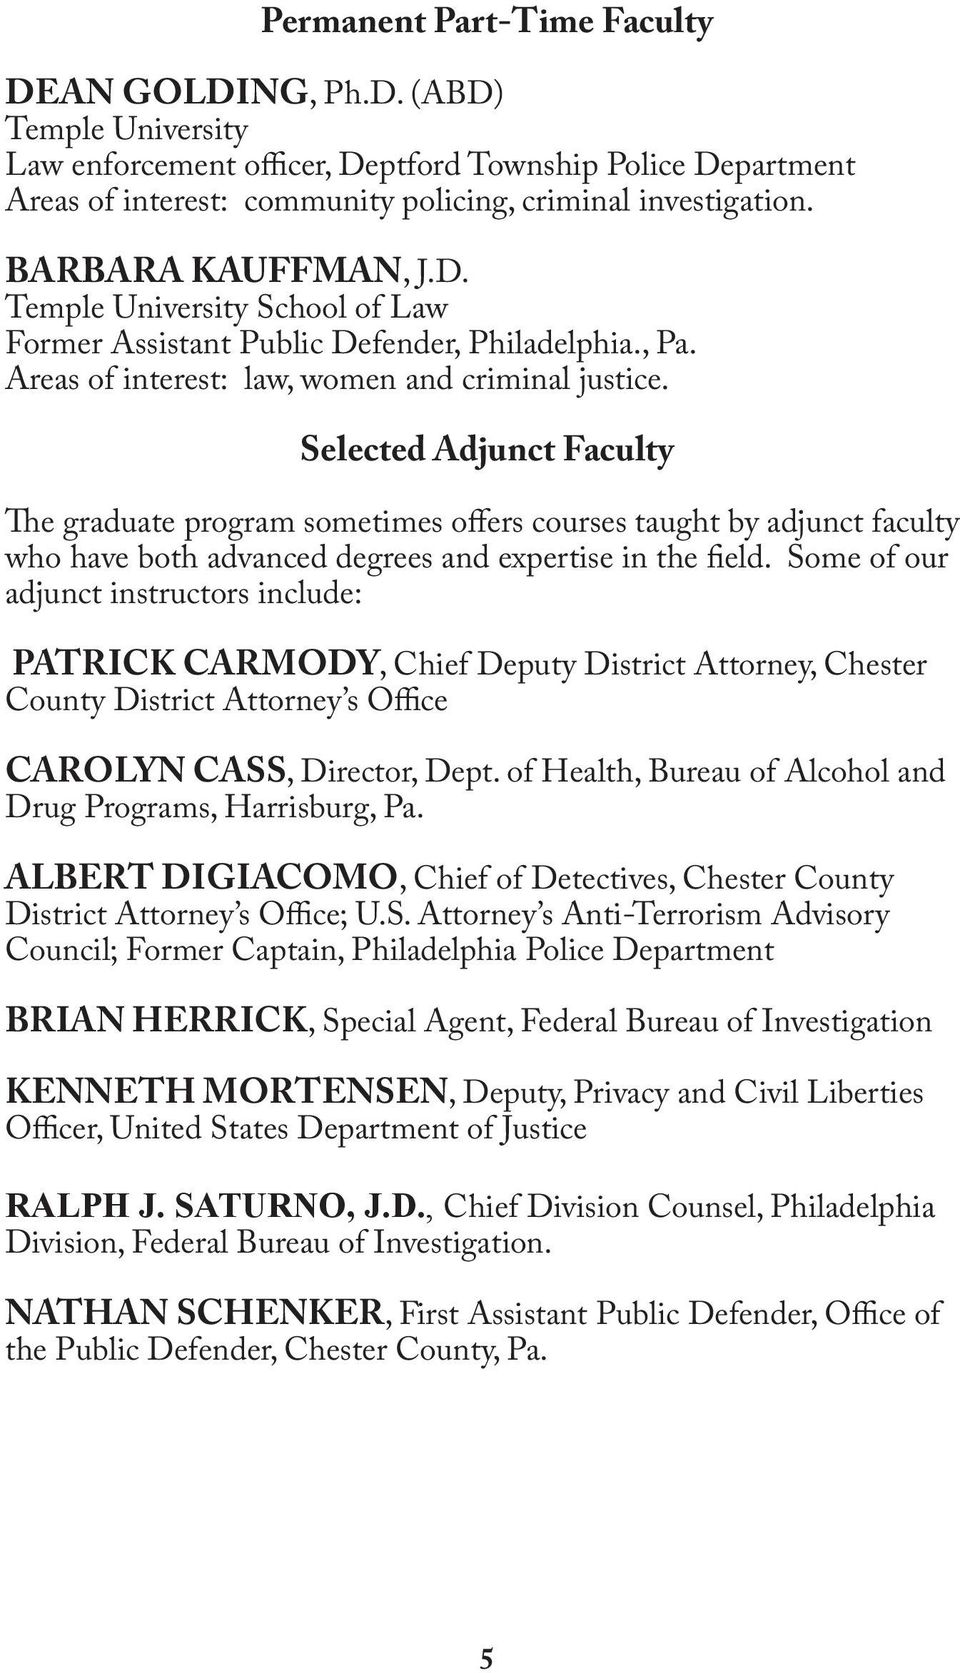 Selected Adjunct Faculty The graduate program sometimes offers courses taught by adjunct faculty who have both advanced degrees and expertise in the field.